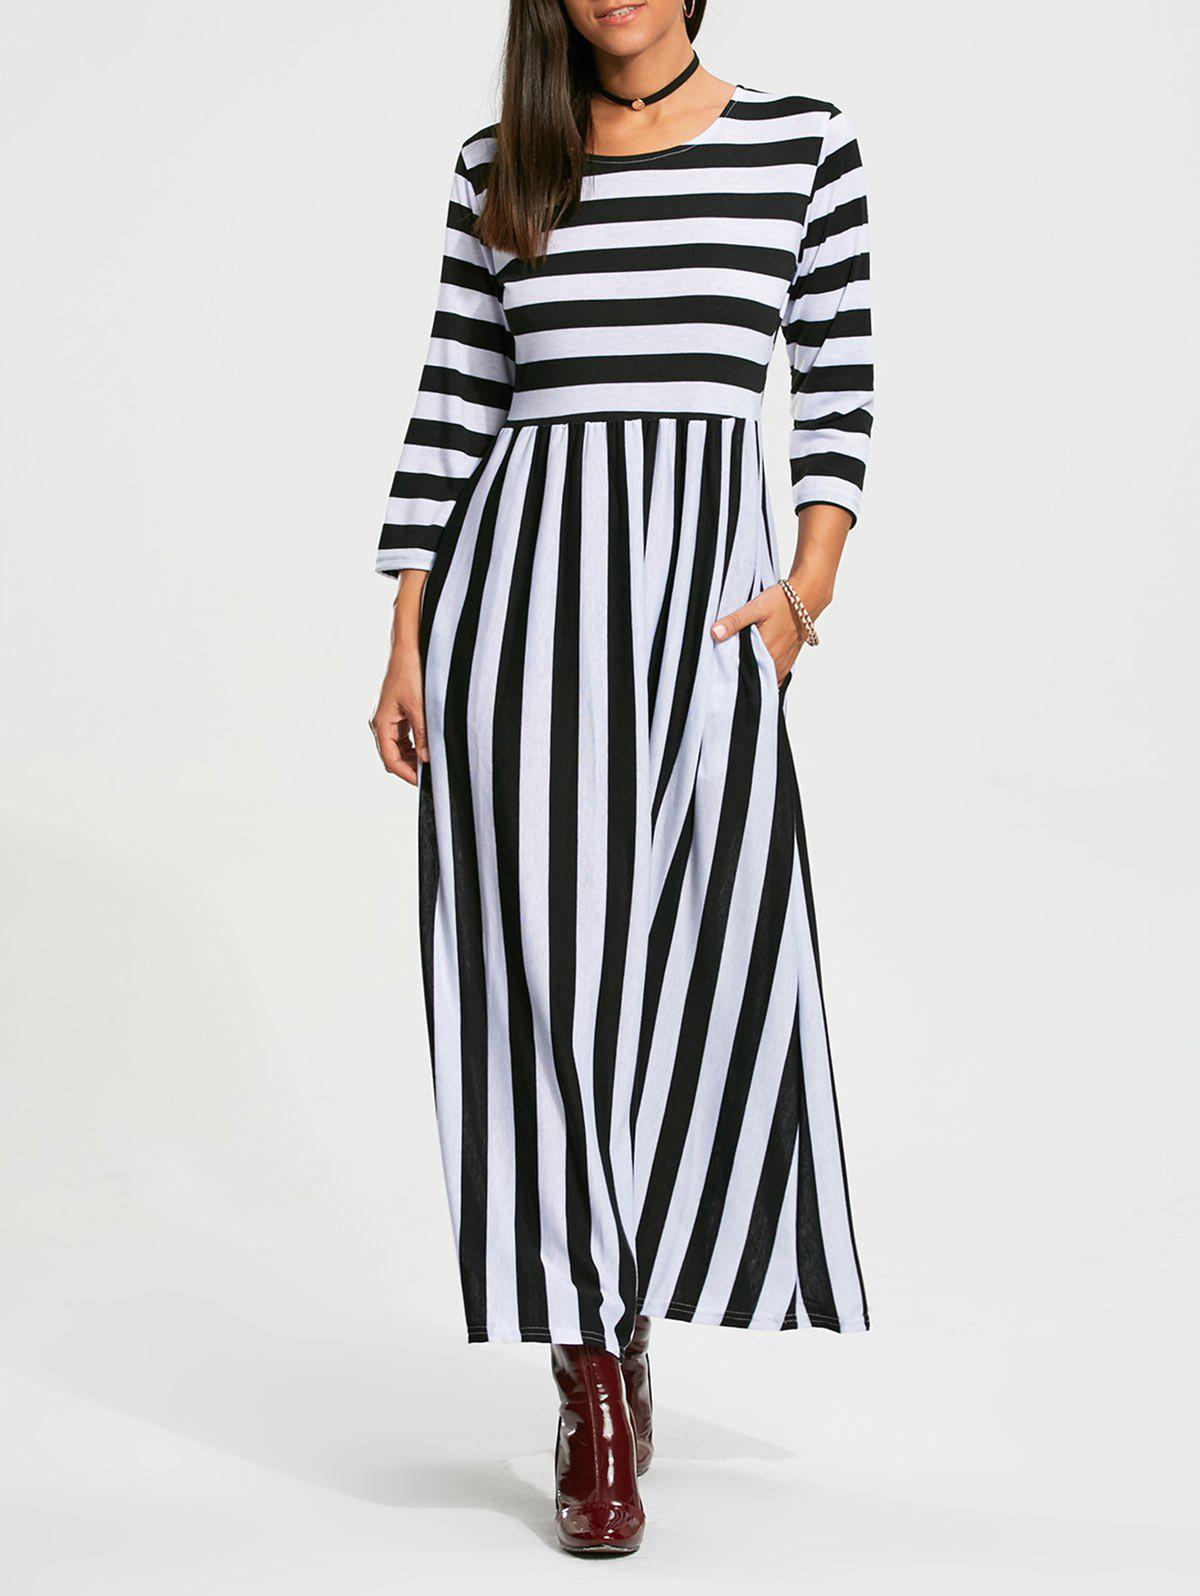 Stripe High Waist Maxi Dress with Pocket - Noir L